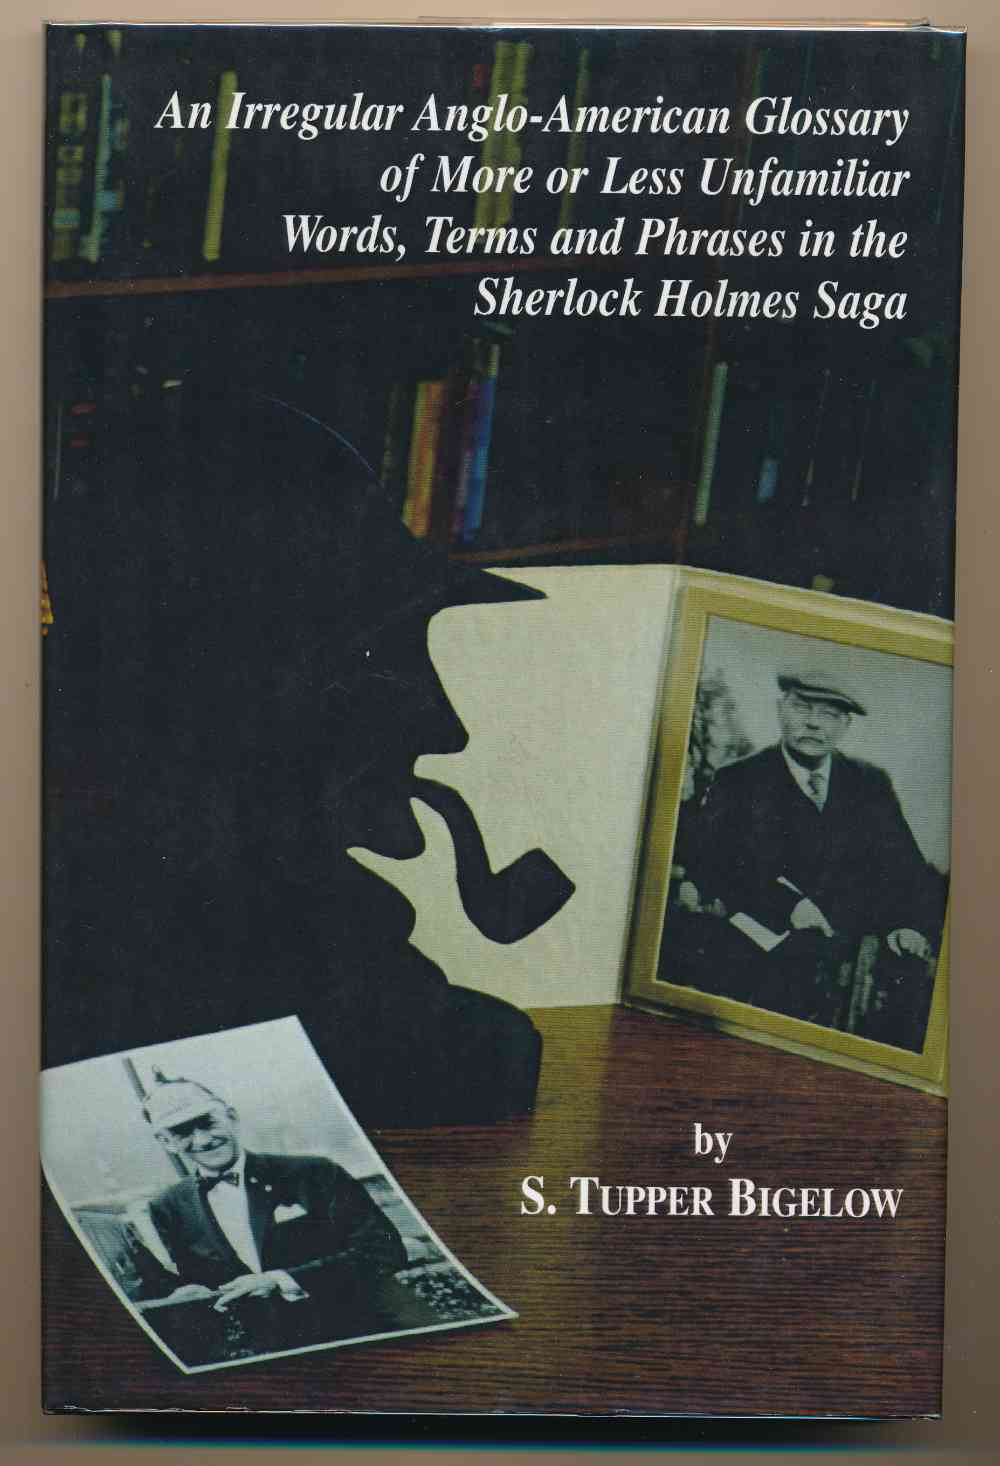 An irregular Anglo-American glossary of more or less unfamiliar words, terms and phrases in the Sherlock Holmes saga